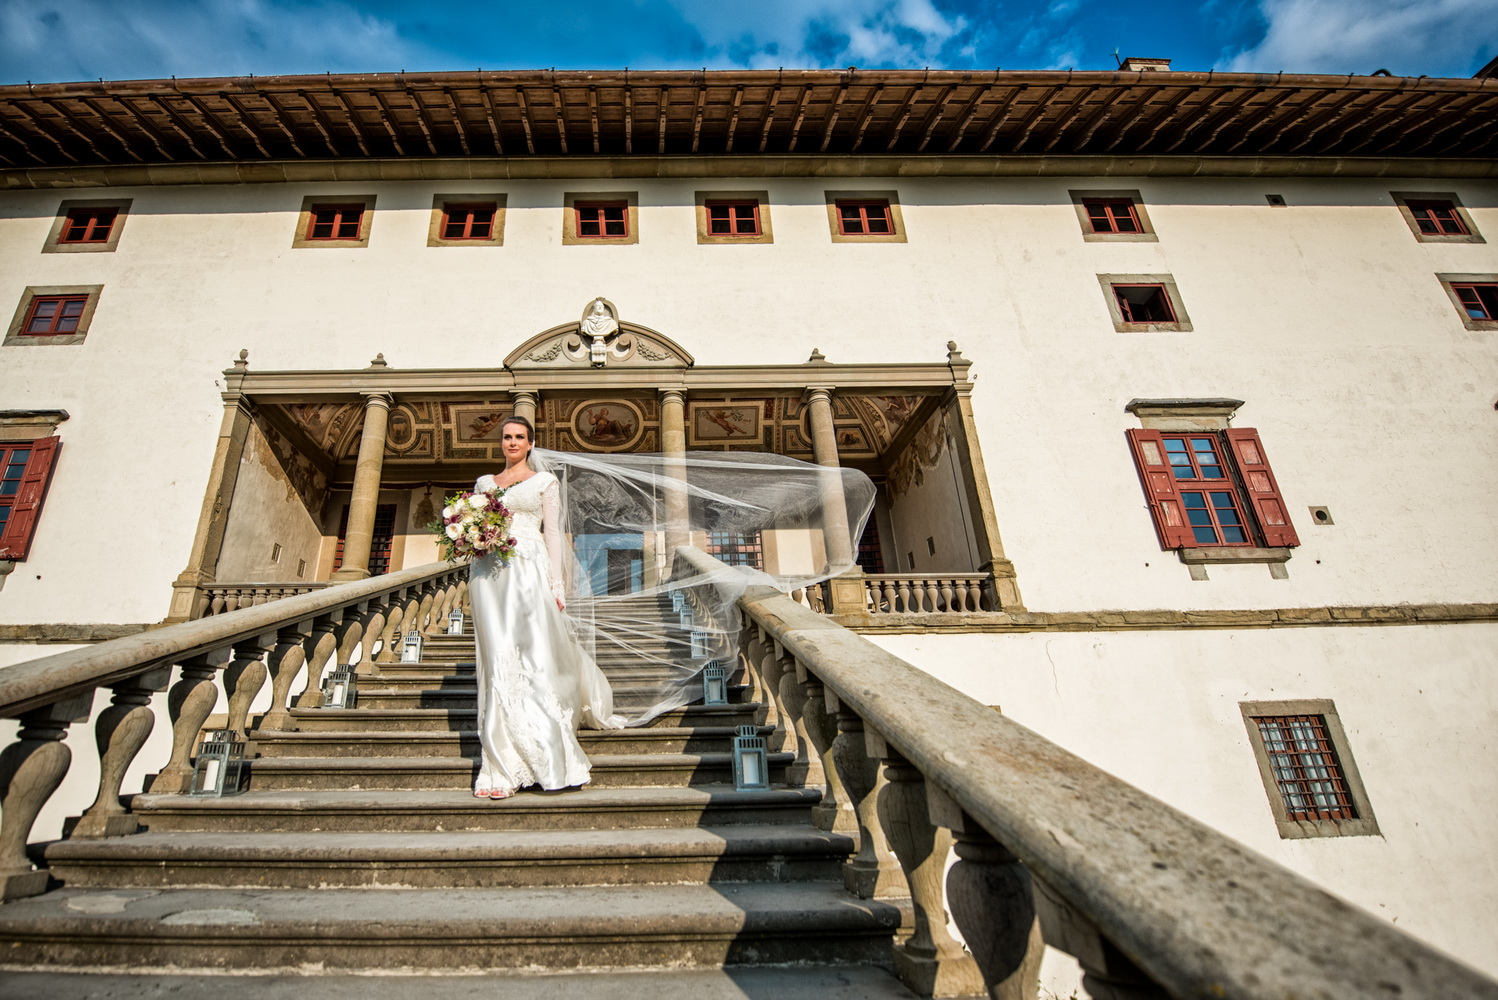 Destination Wedding Toscana | Caroline e Fernando destination wedding na toscana | caroline e fernando Destination Wedding na Toscana | Caroline e Fernando marco zammarchi destination wedding 19